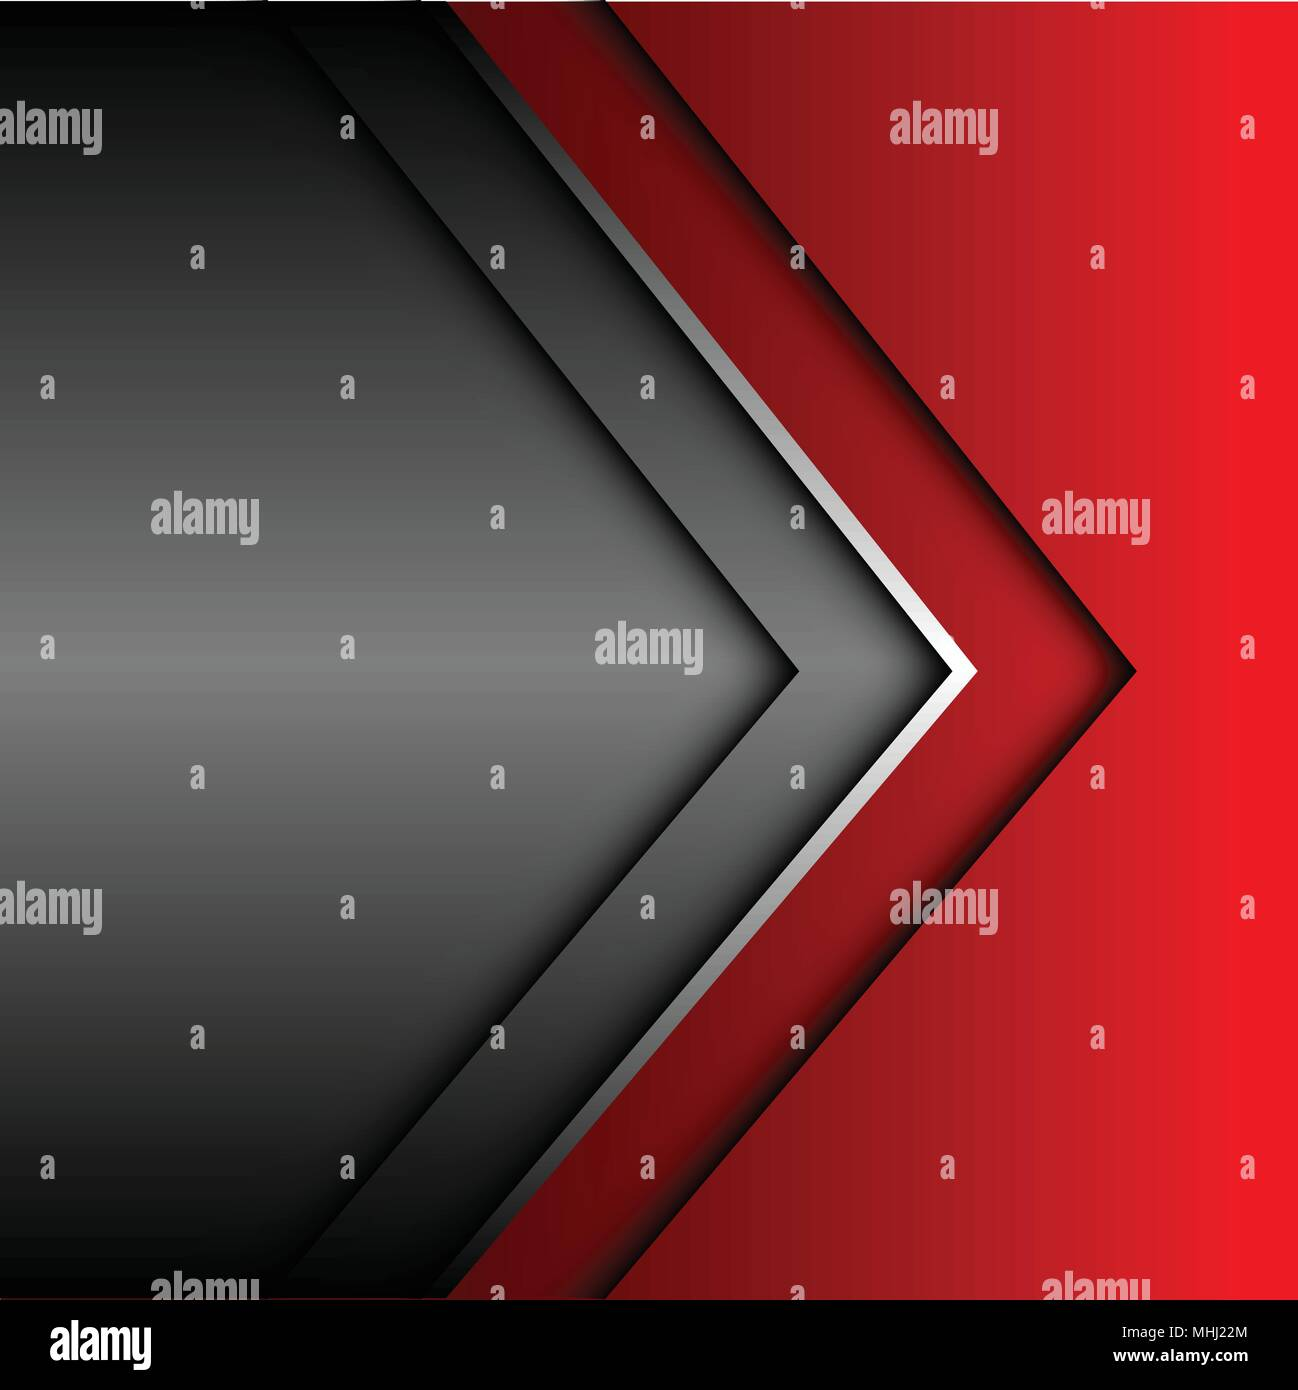 Abstract Red Silver Gray Arrow Design Modern Futuristic Background